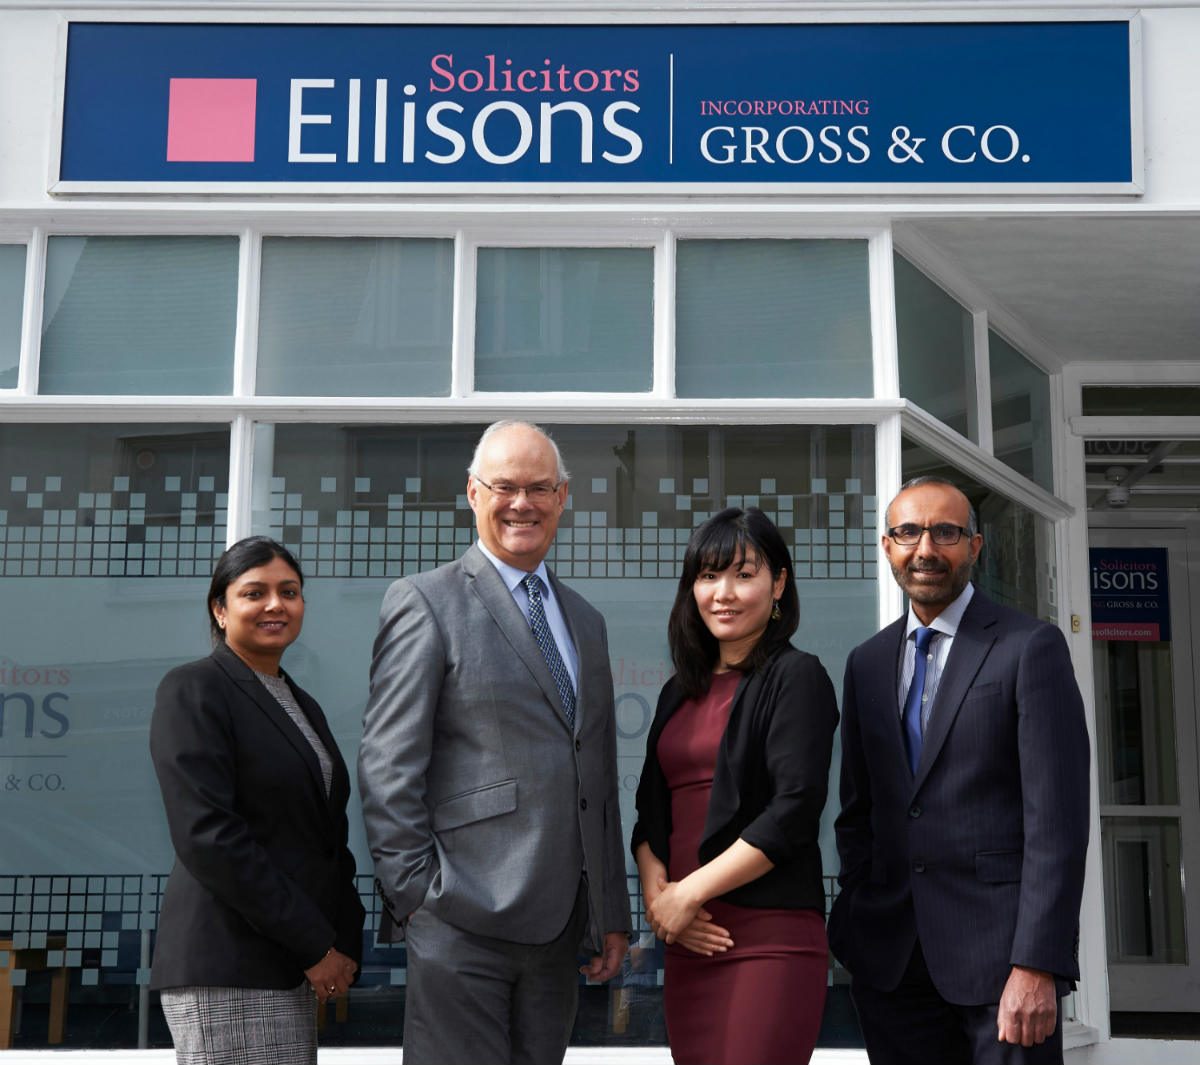 Ellisons Solicitors Incorporating Gross & Co. Expands Its